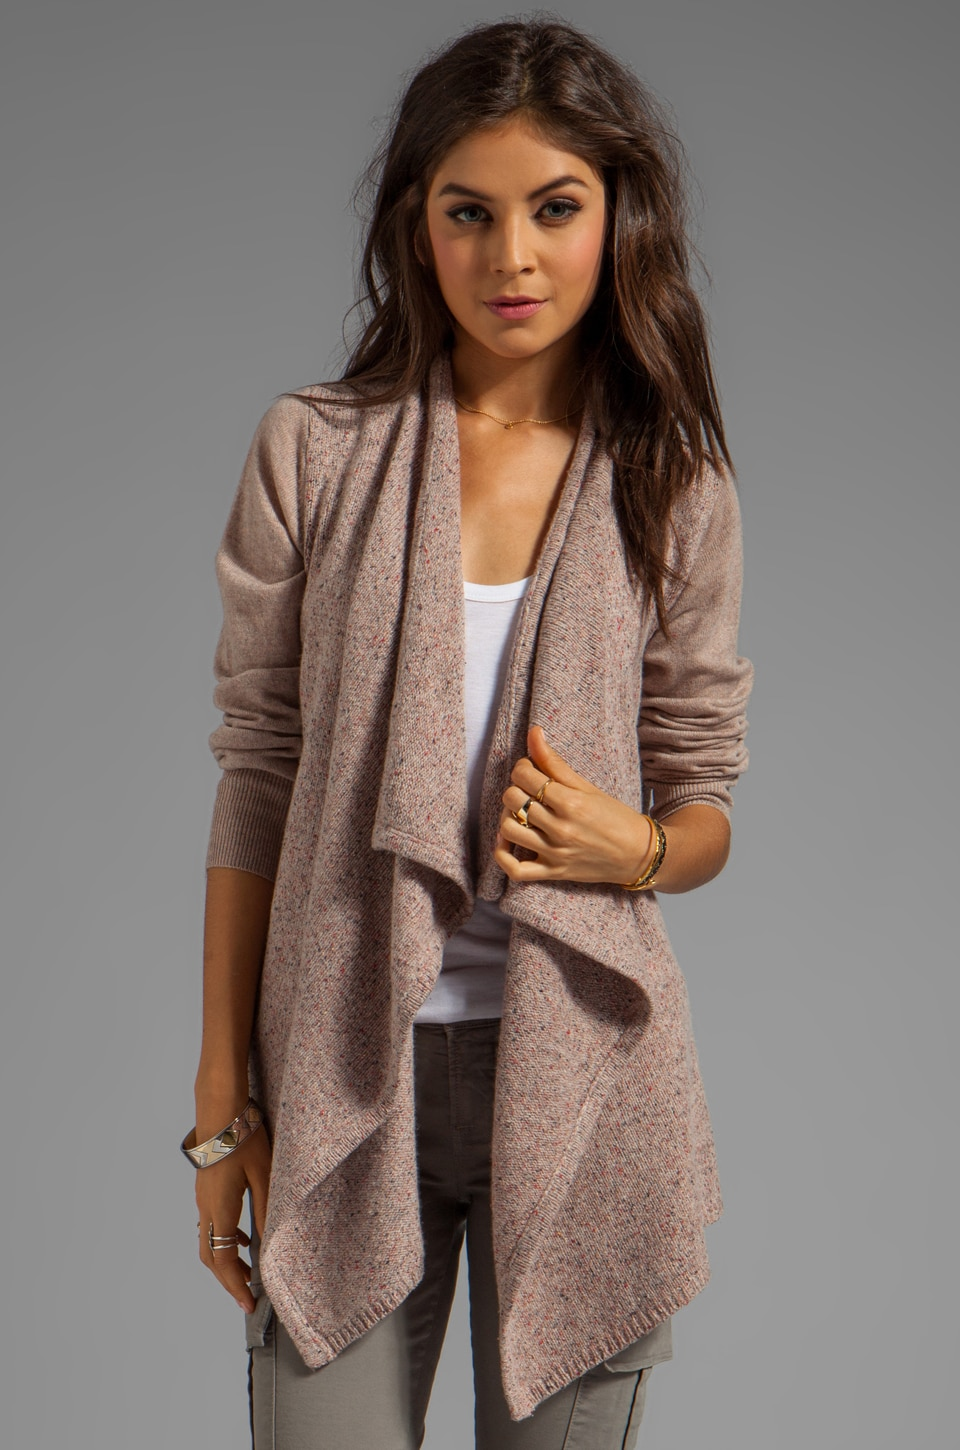 Joie Solid With Marled Mix Starley Cardigan in Light Heather Oatmeal